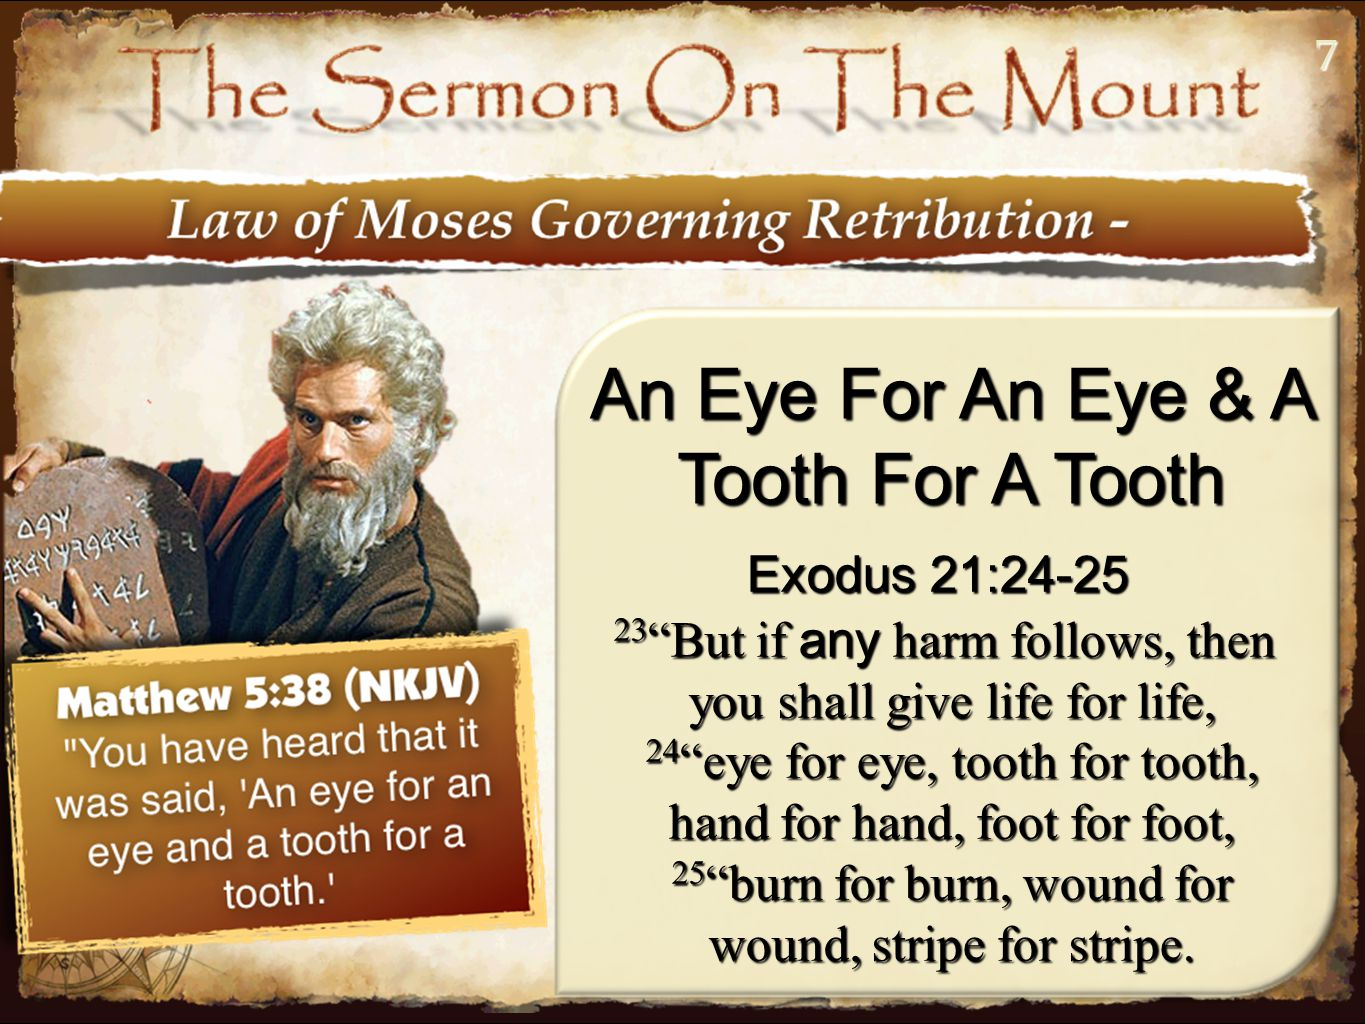 77 An Eye For An Eye & A Tooth For A Tooth Exodus 21:24-25 23 But if any harm follows, then you shall give life for life, 24 eye for eye, tooth for tooth, hand for hand, foot for foot, 25 burn for burn, wound for wound, stripe for stripe.